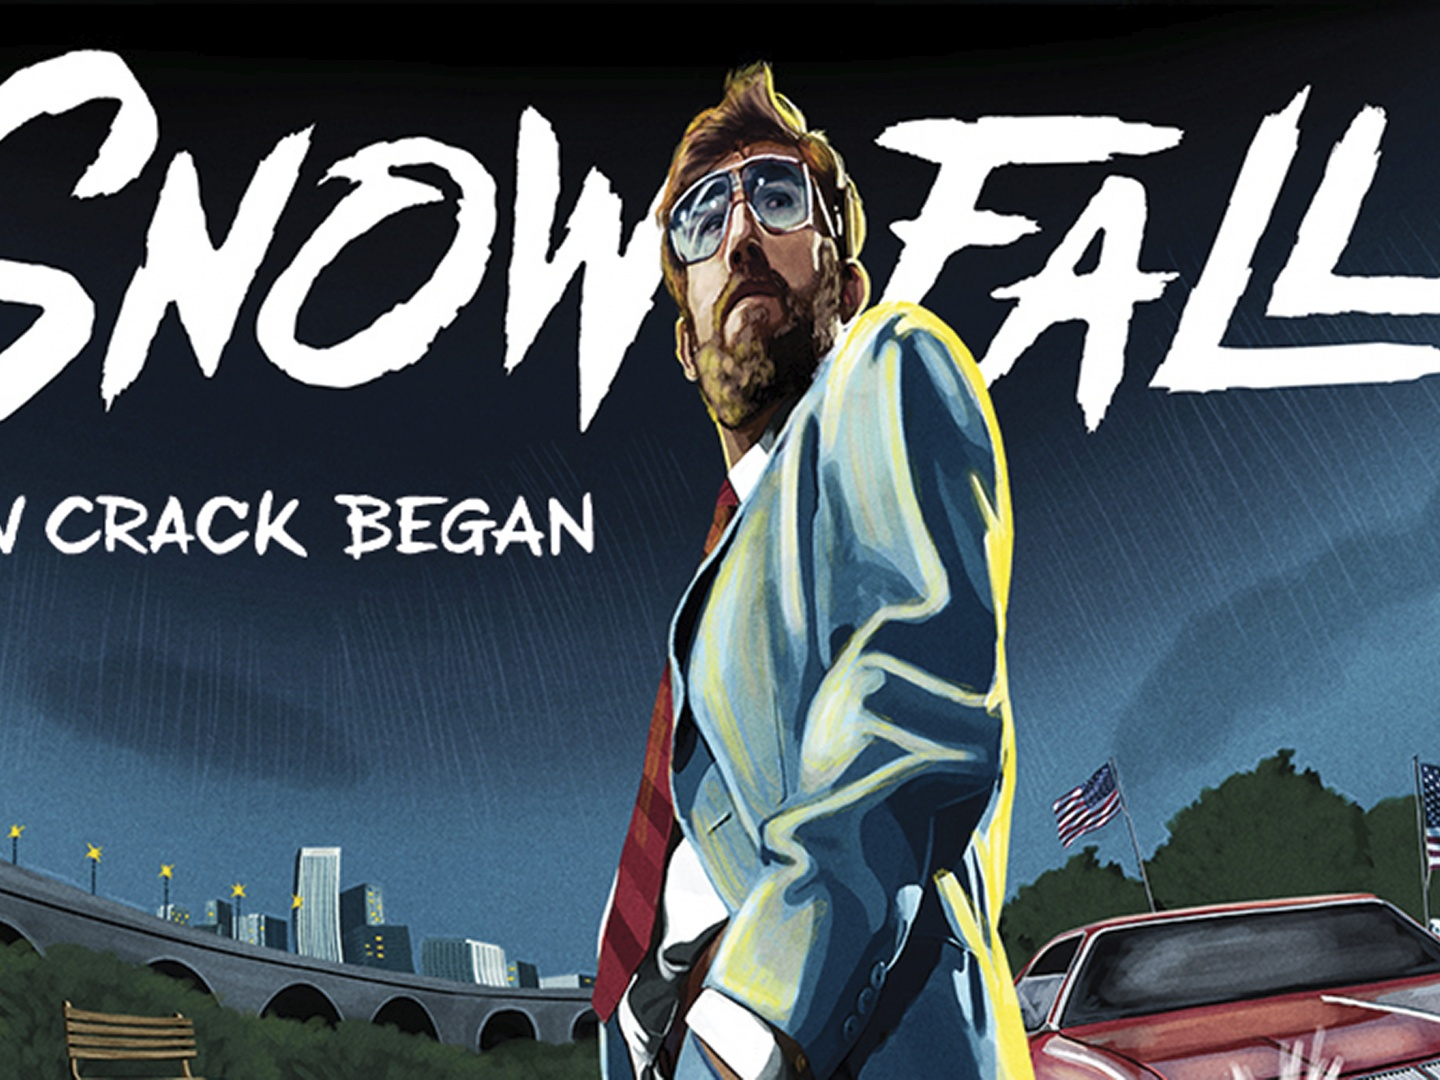 Image for Snowfall billboard (Teddy)